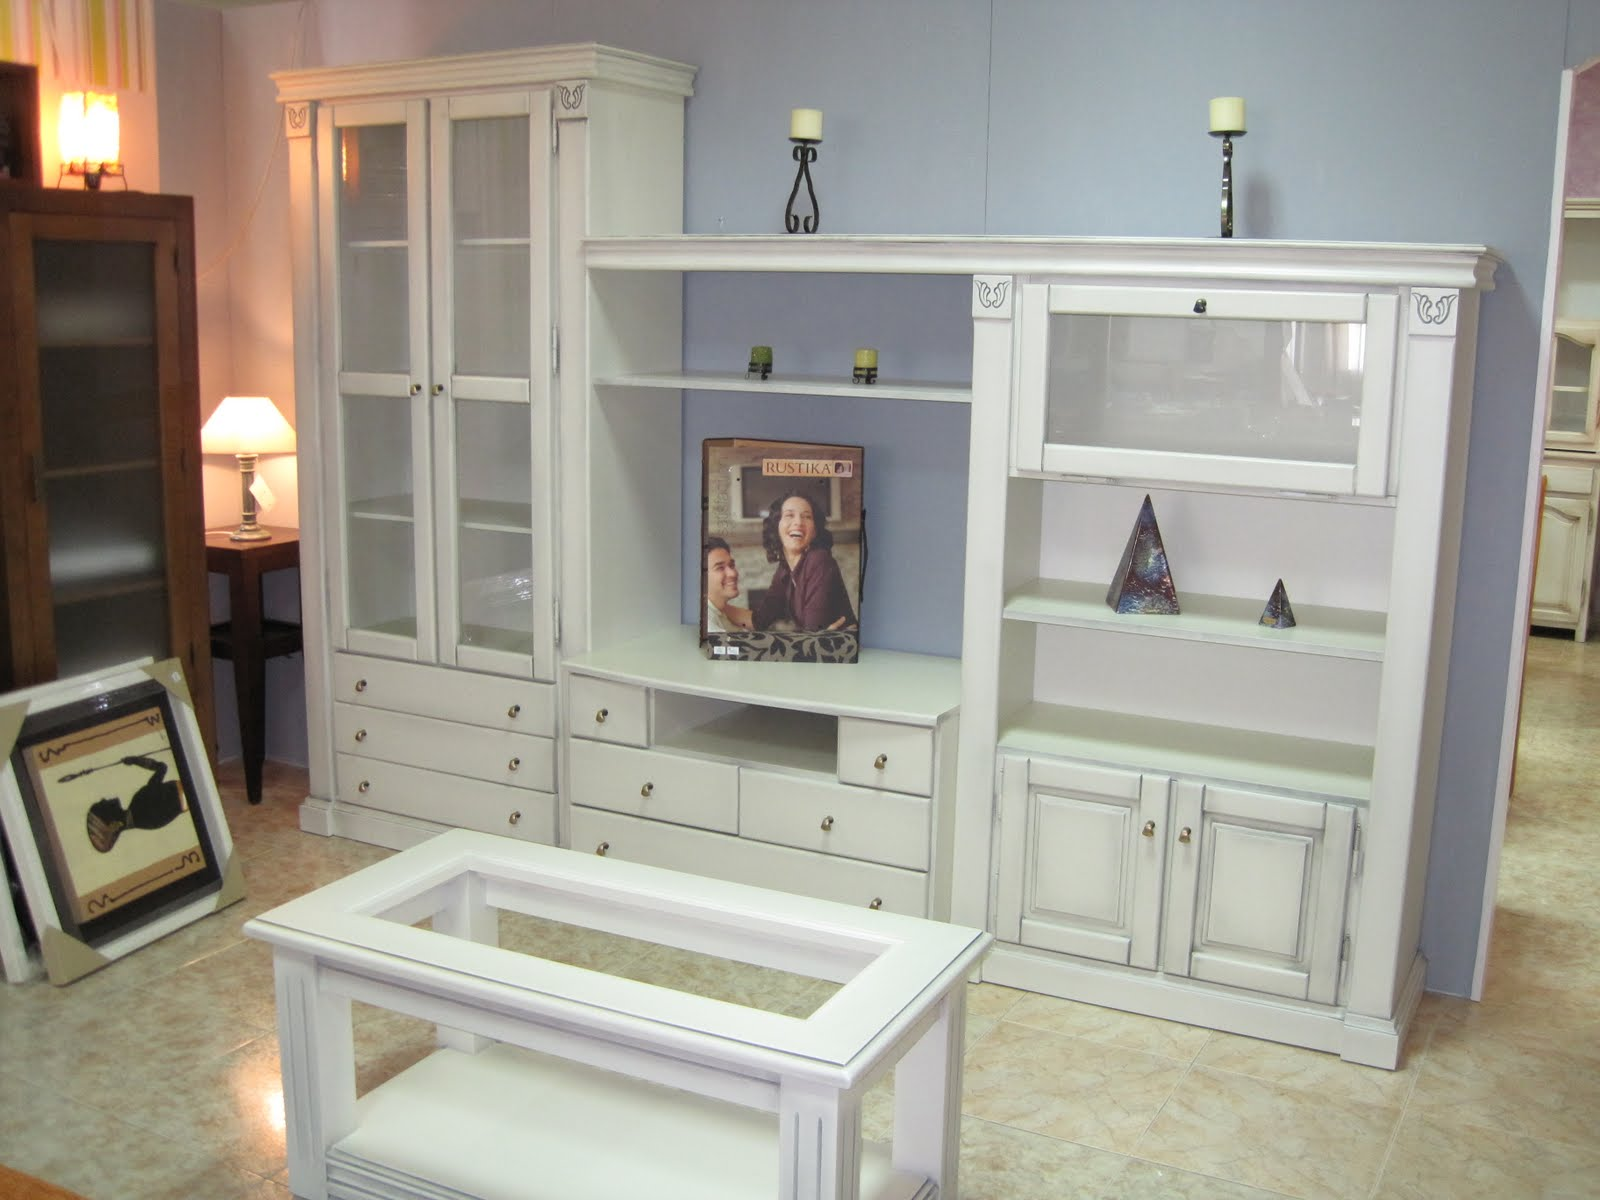 Muebles arcecoll muebles neoclasico en blanco for Muebles de salon clasicos en blanco